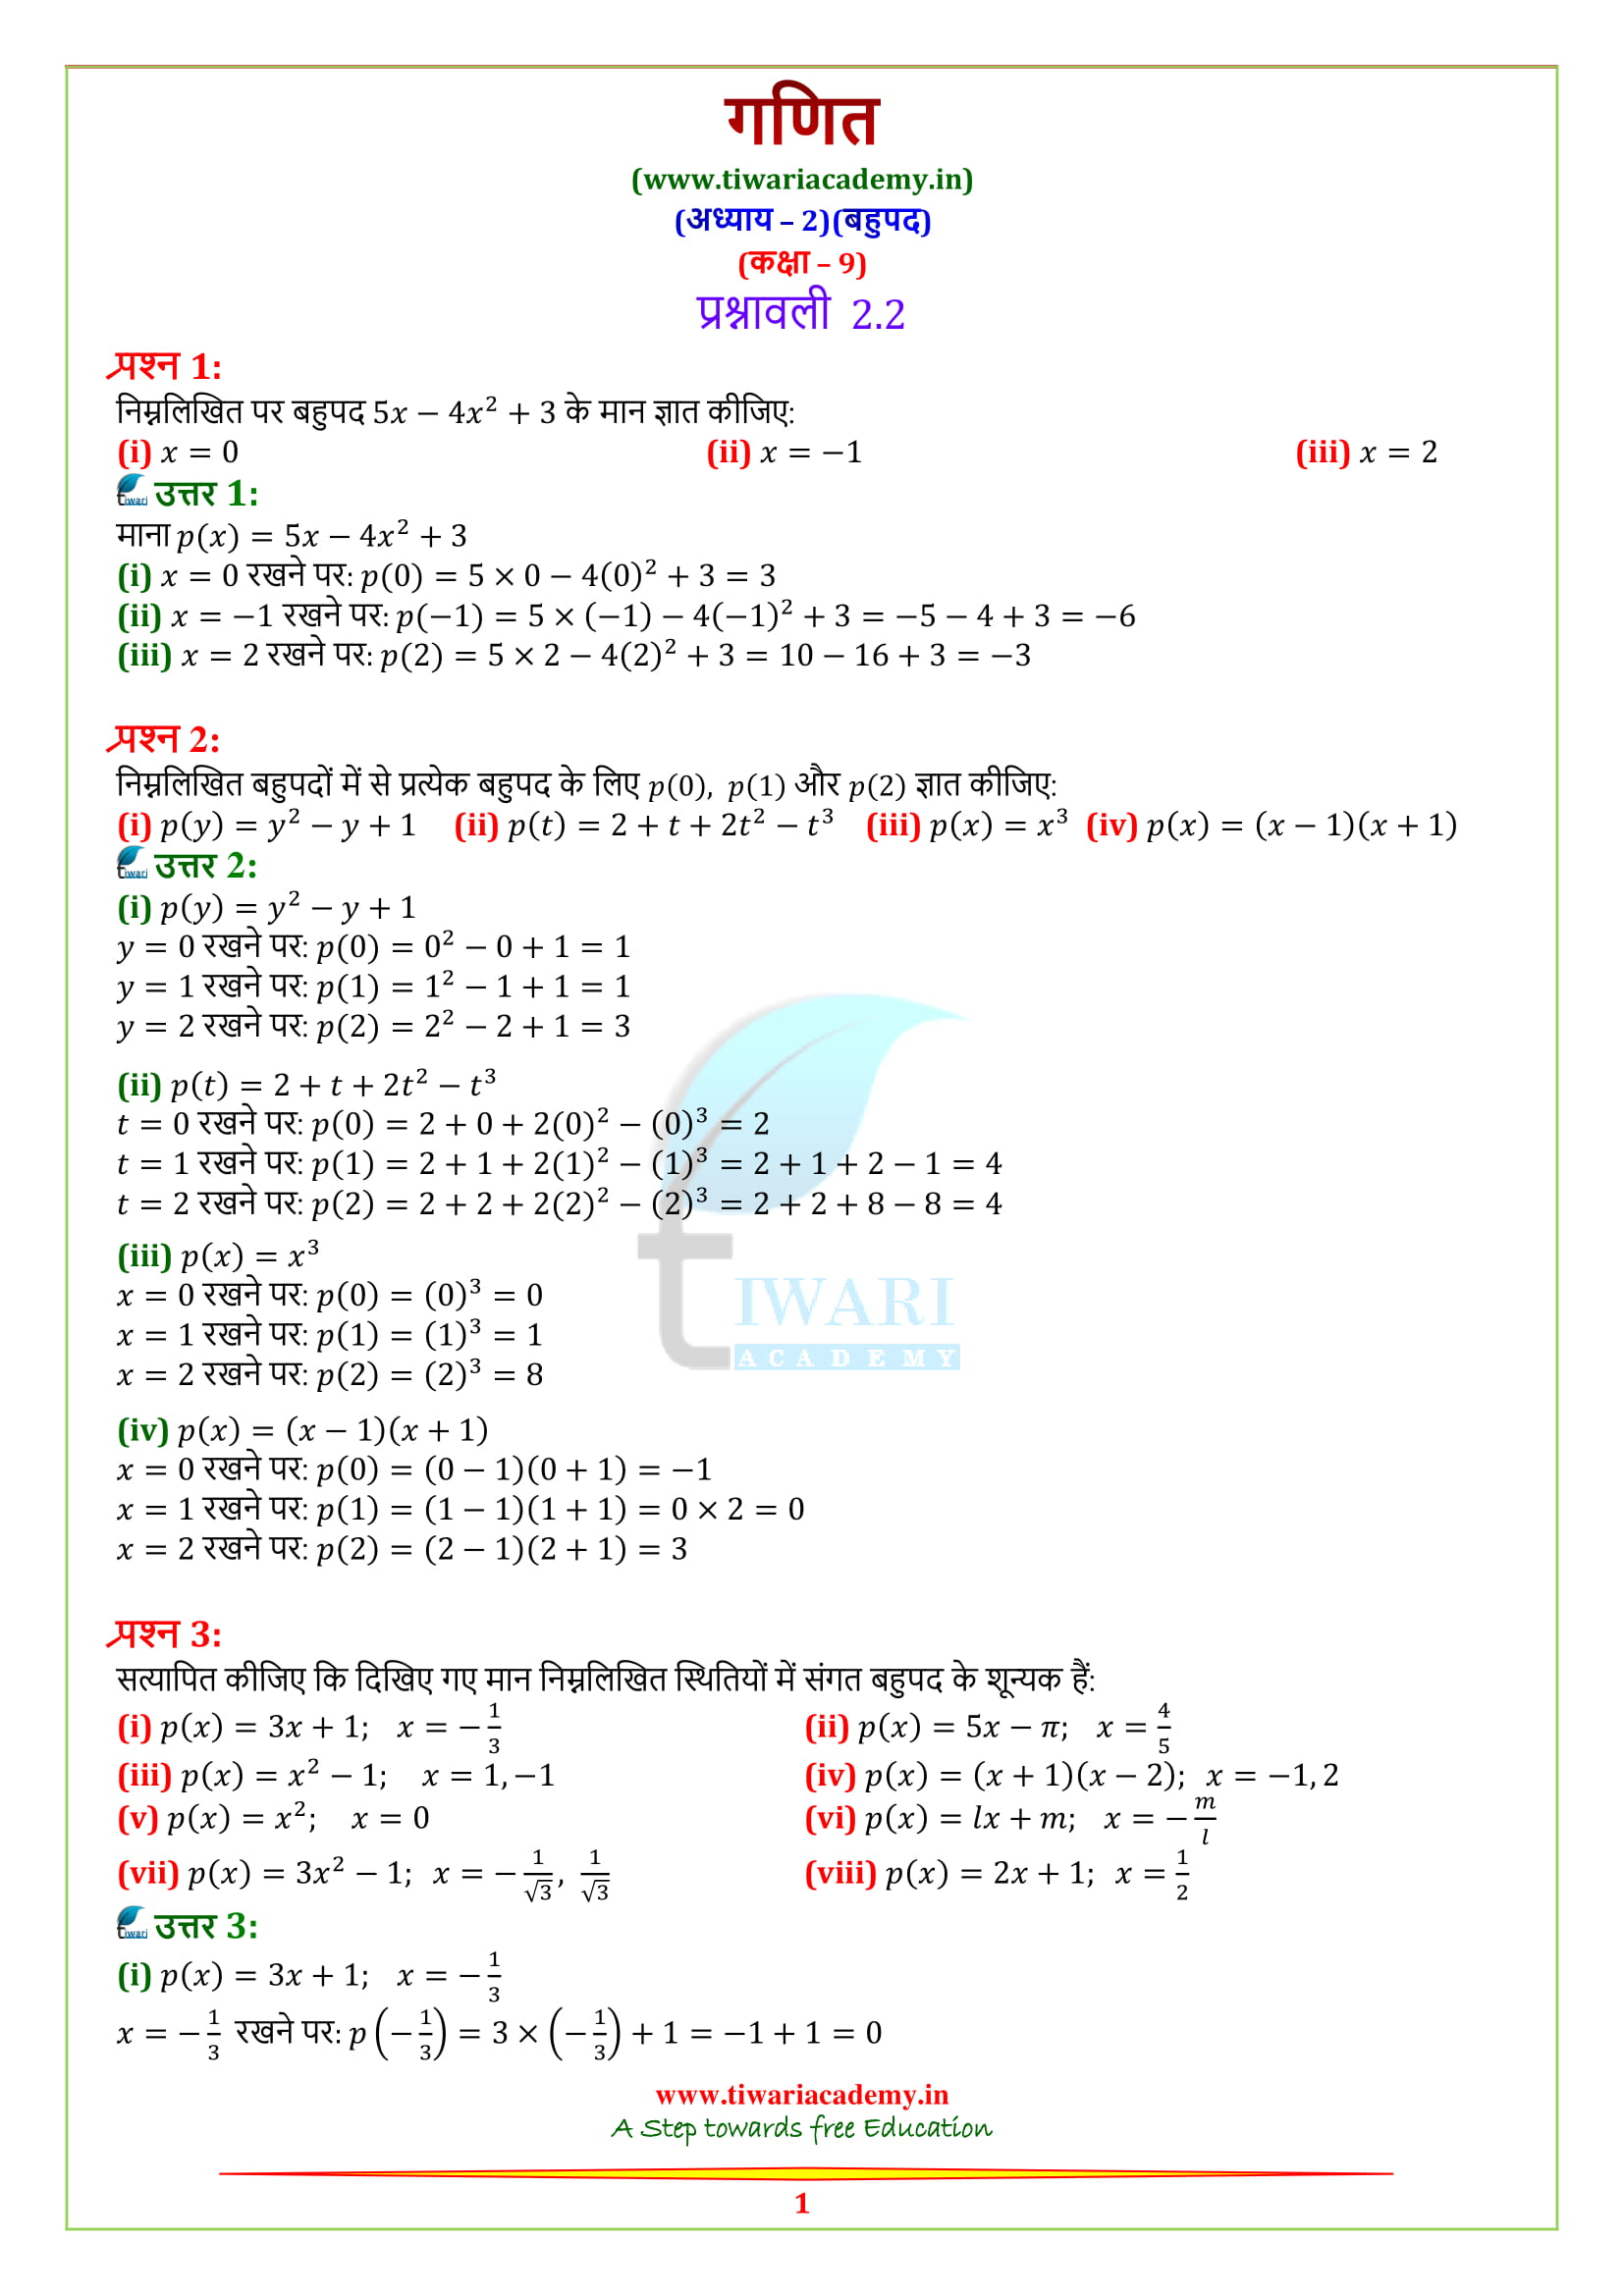 9 Maths exercise 2.2 solutions in hindi medium for high school